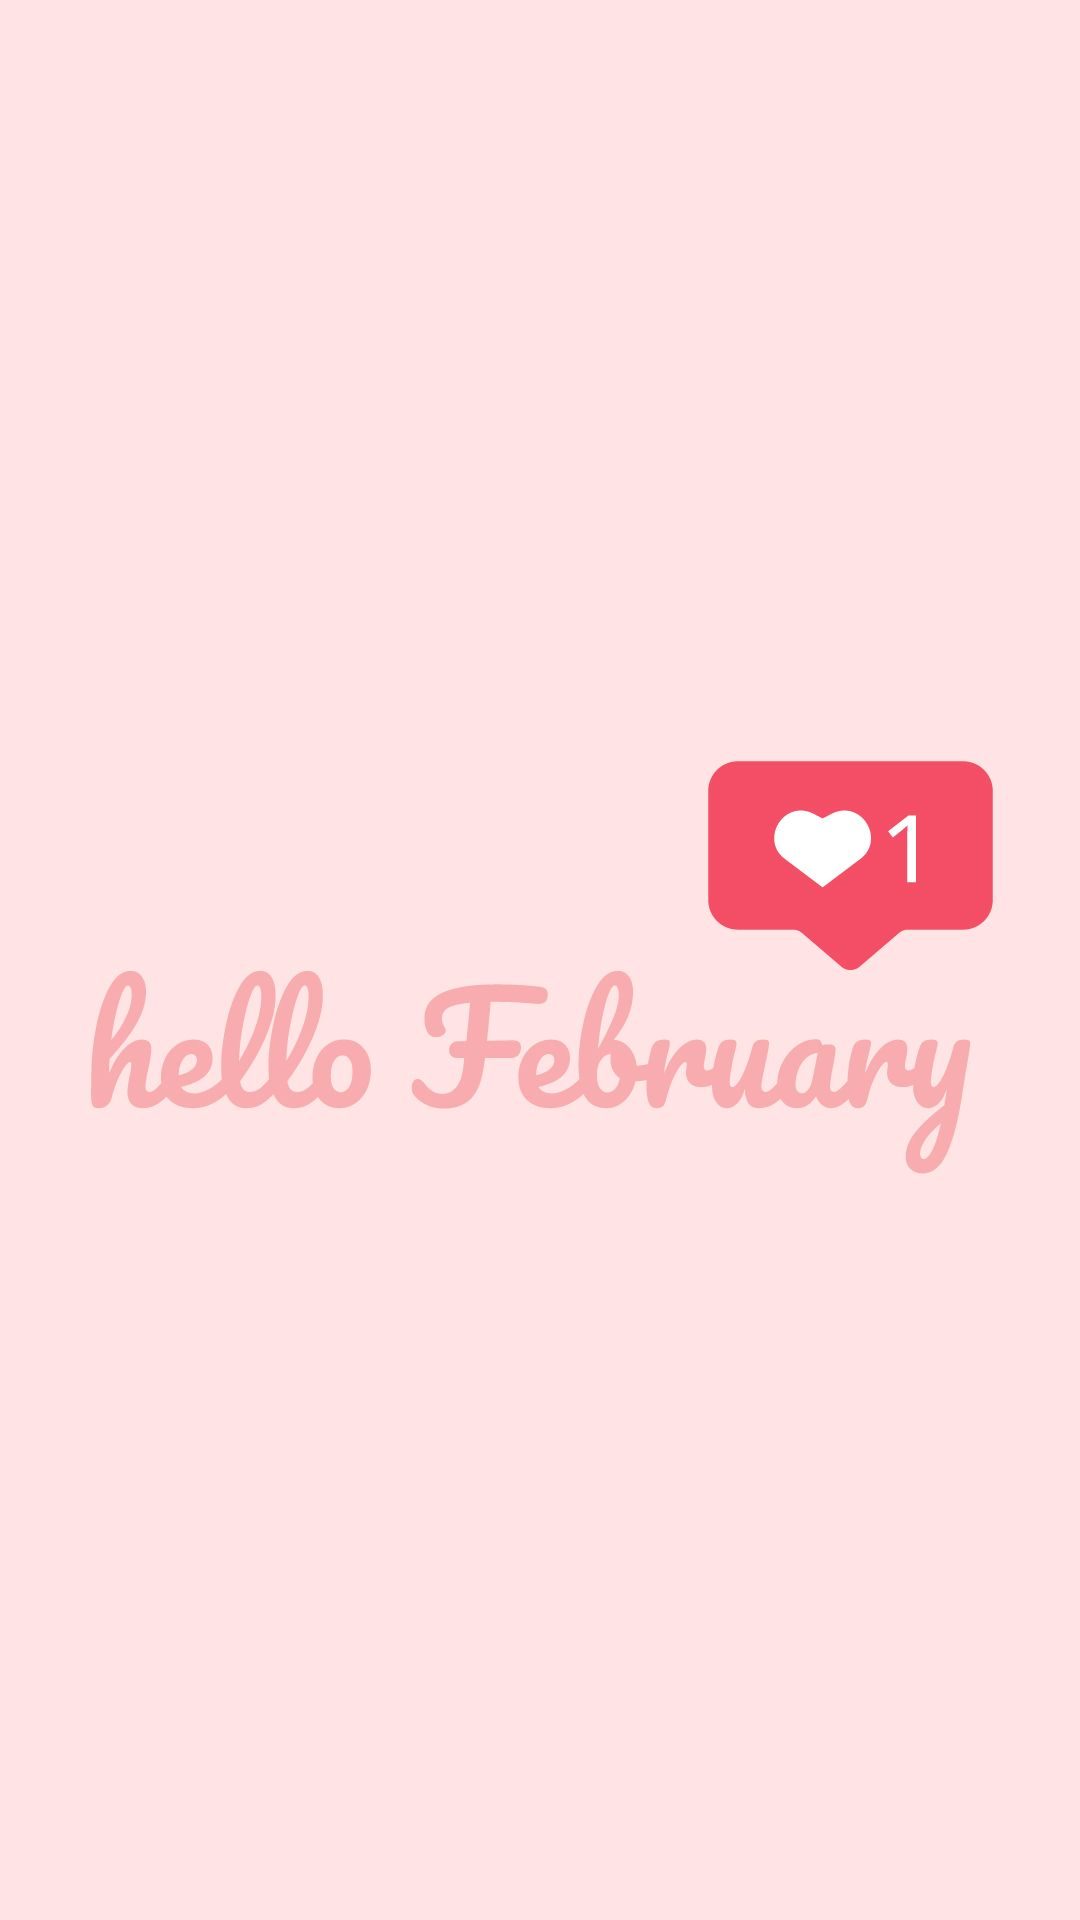 Hello February Mobile Wallpaper Iphone Android Valentines Wallpaper Iphone Valentines Day Wallpaper Phone Wallpapers Valentines Wallpaper